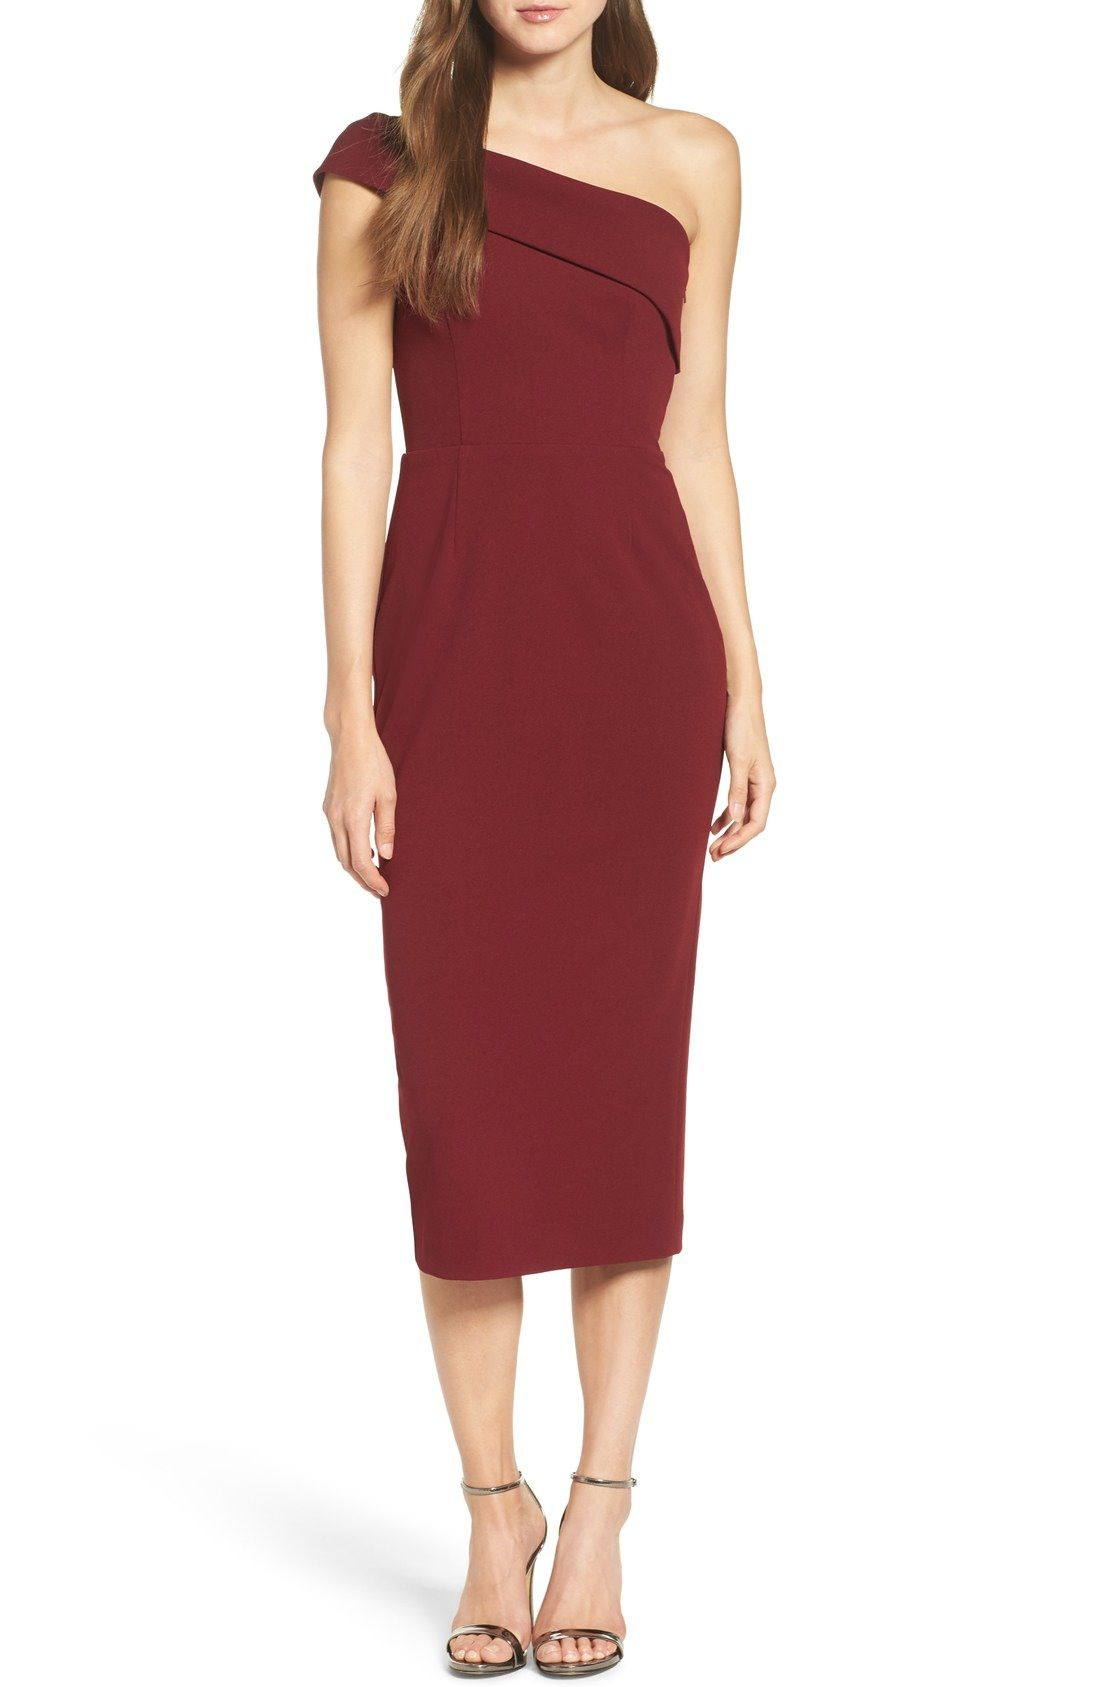 Sheath dresses for wedding guest  Katie May OneShoulder Midi Sheath Dress available at Nordstrom